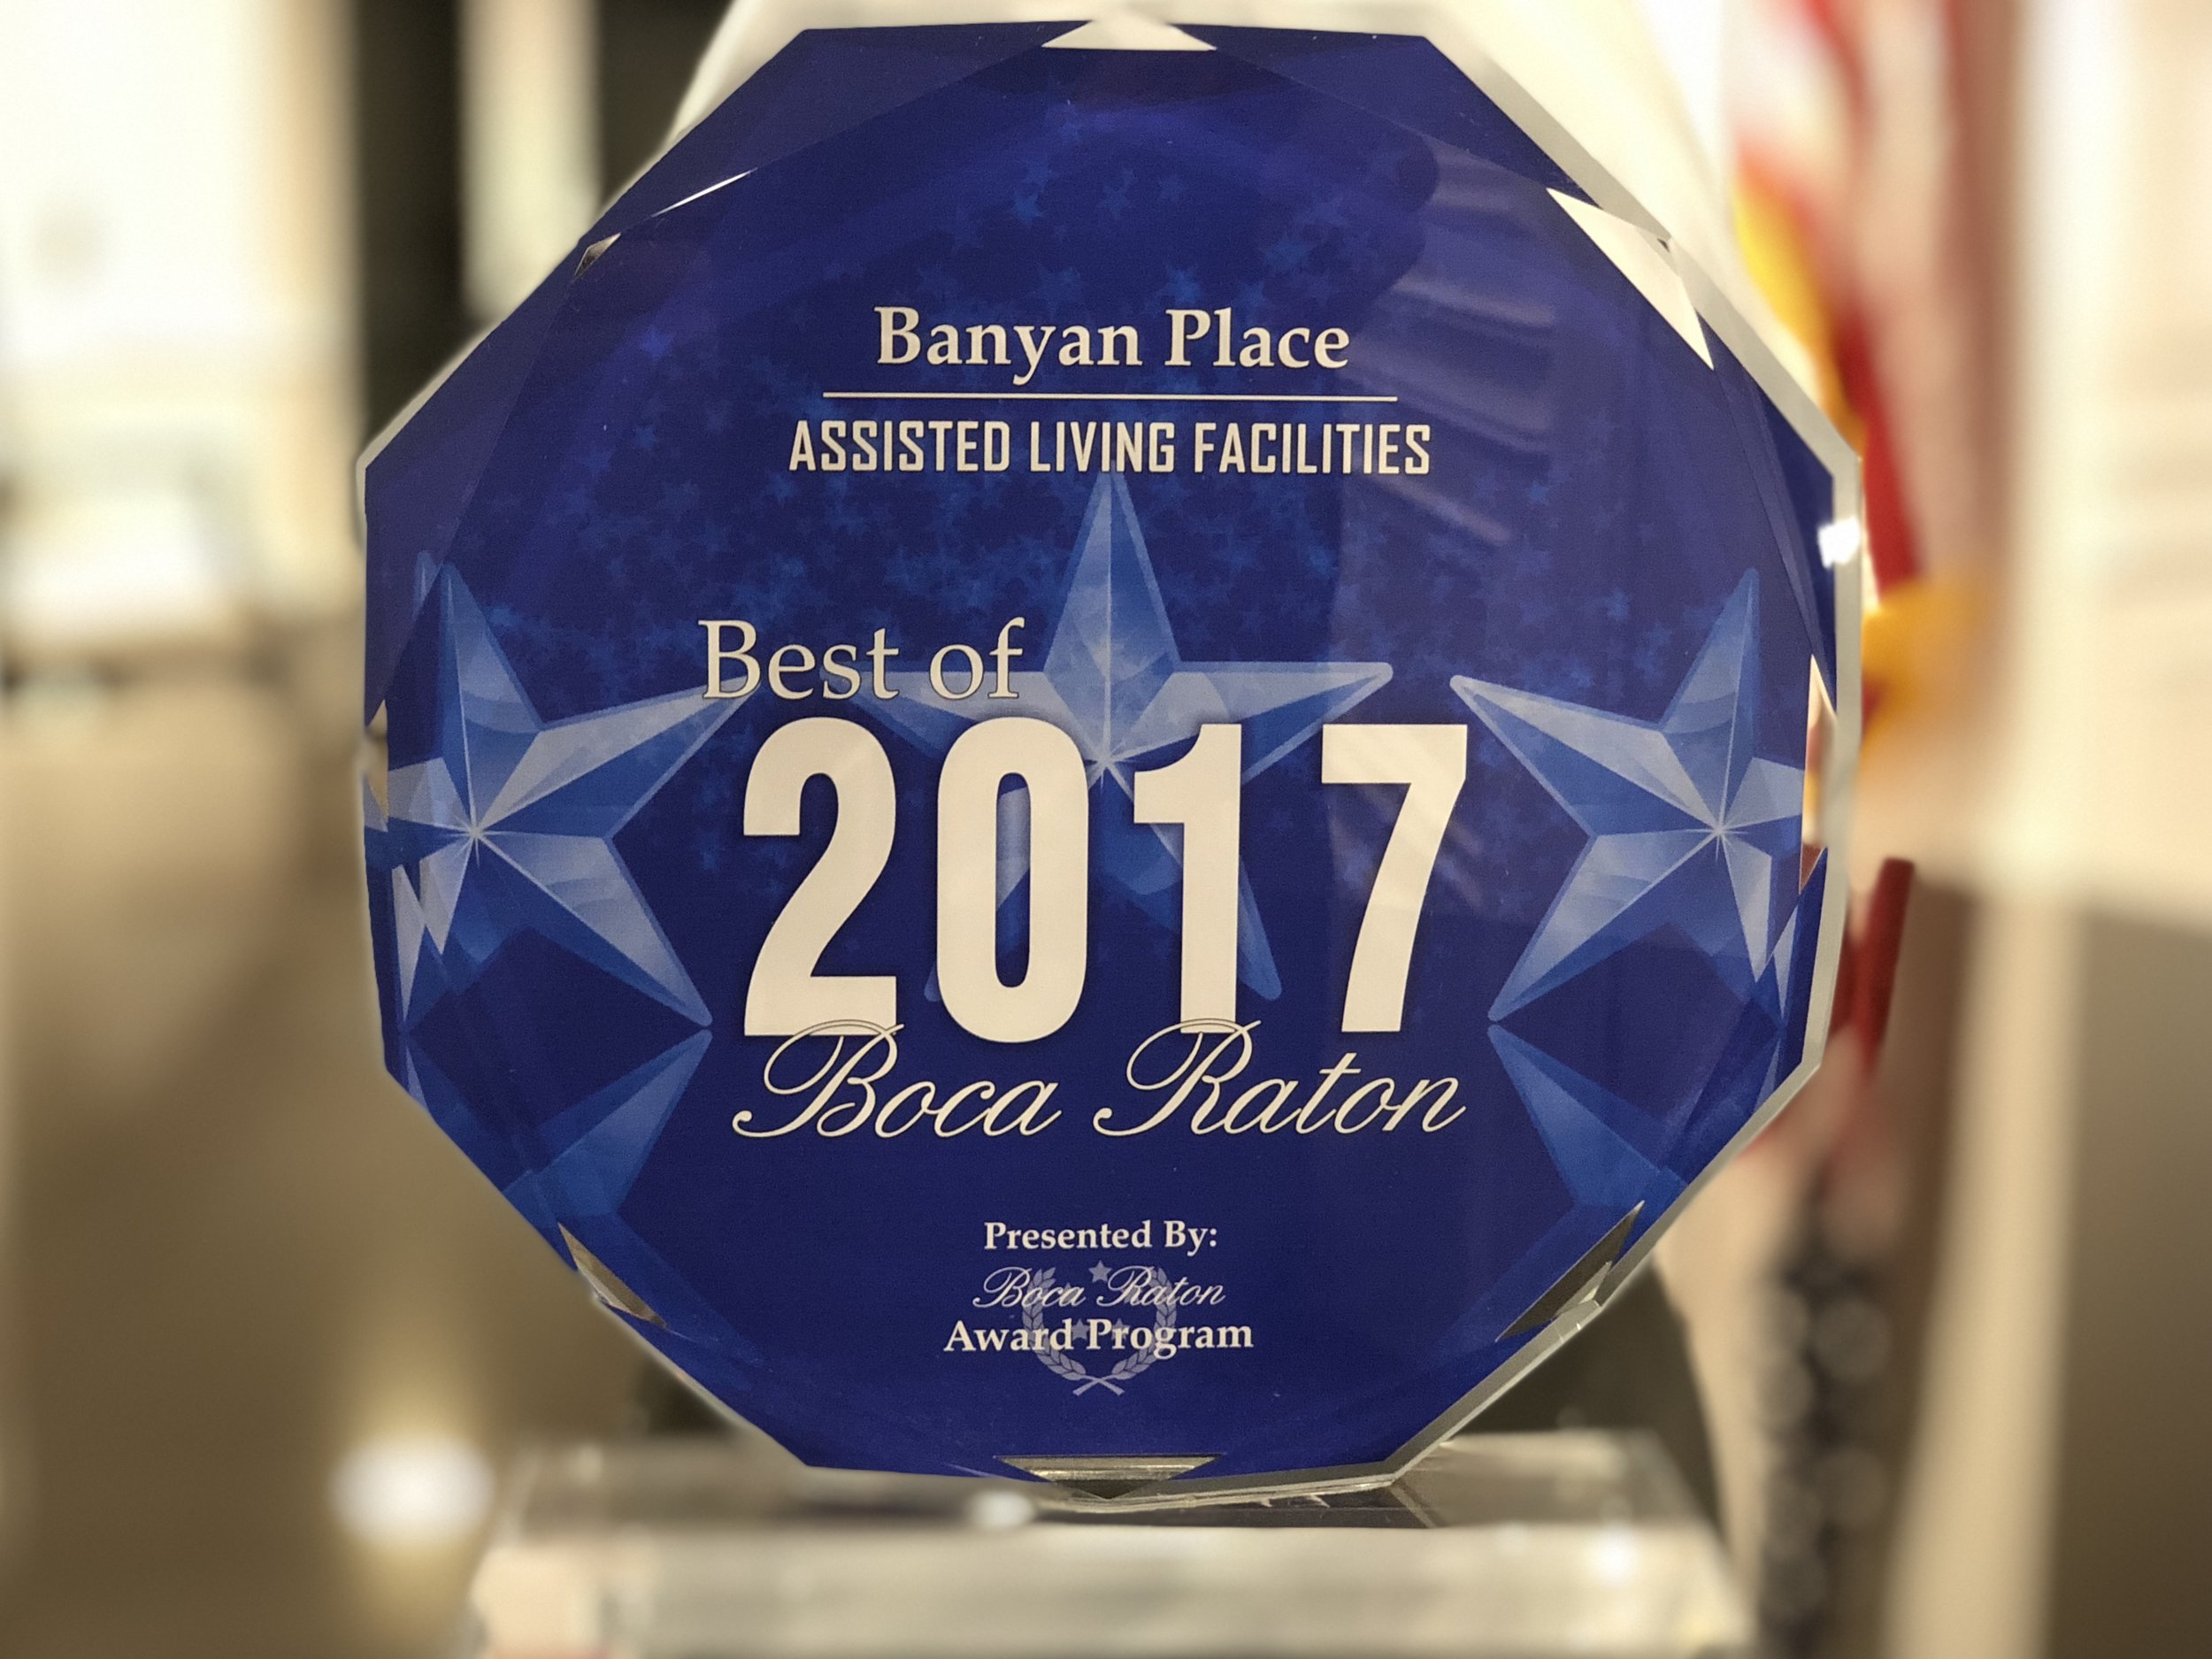 Banyan Place Best of Boca Raton Assisted Living Facility 2017